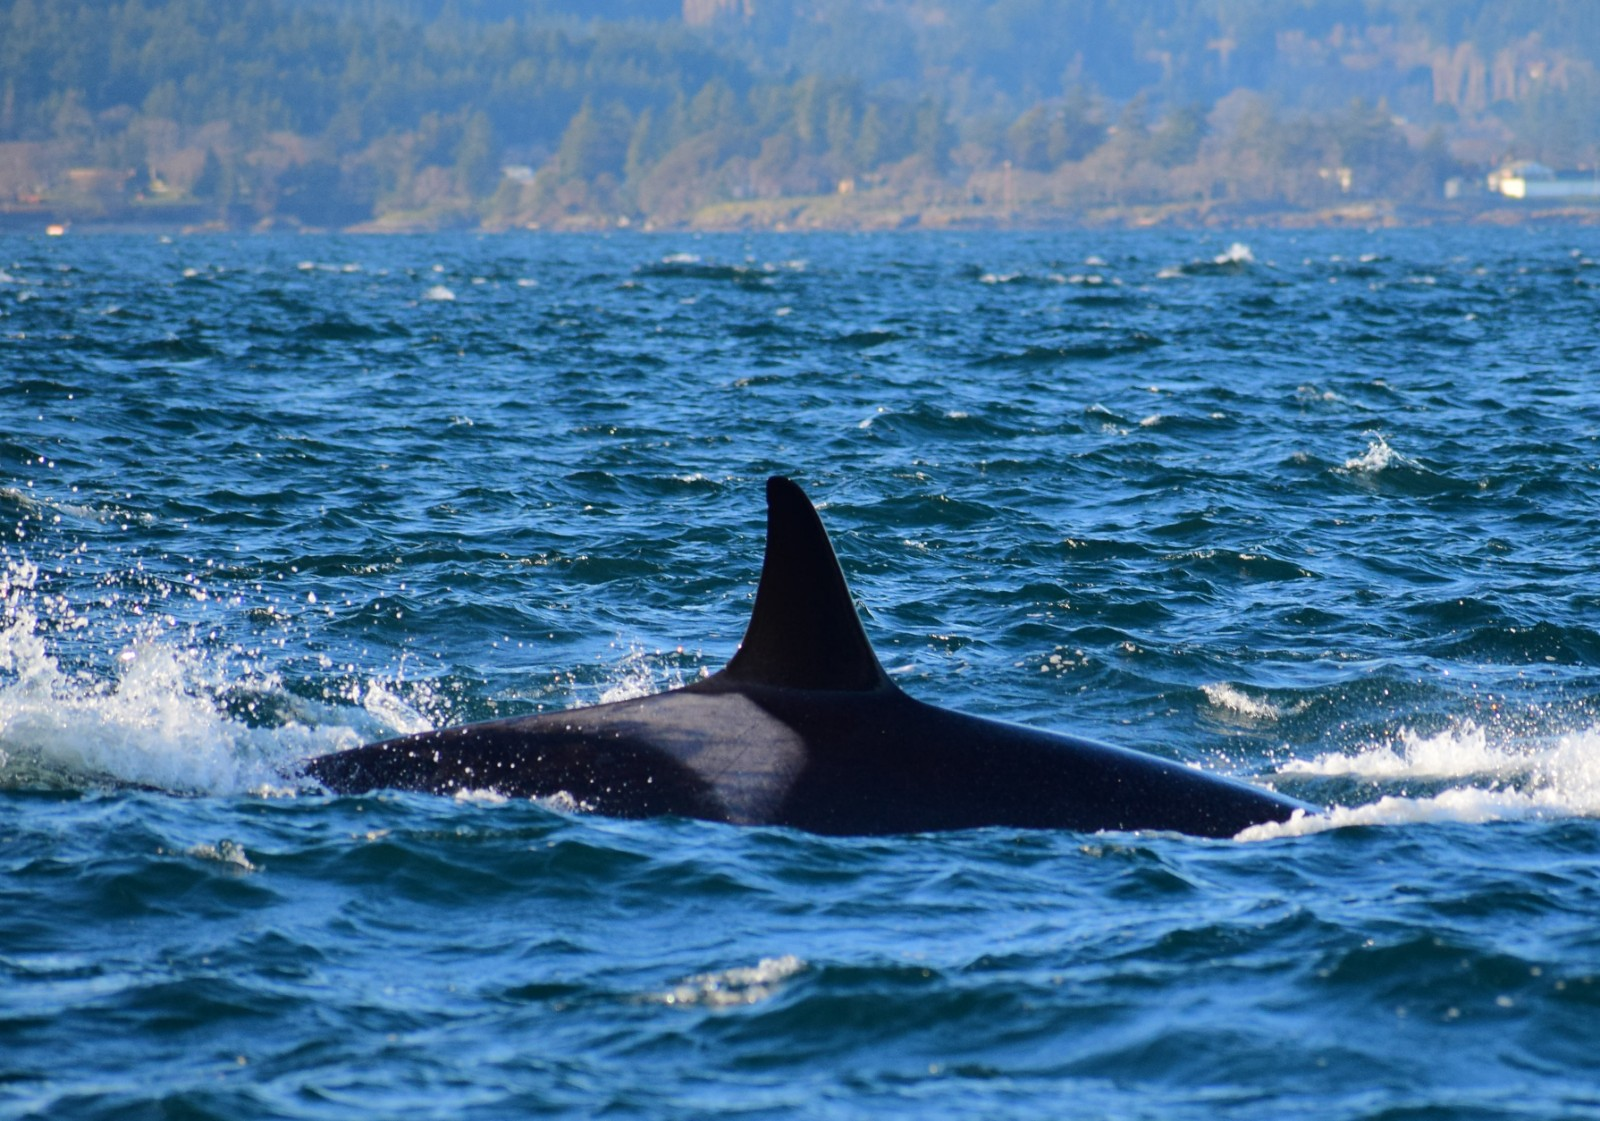 Orca rising to the surface to catch a breath. Picture taken by Captain Ian with a zoom lens.